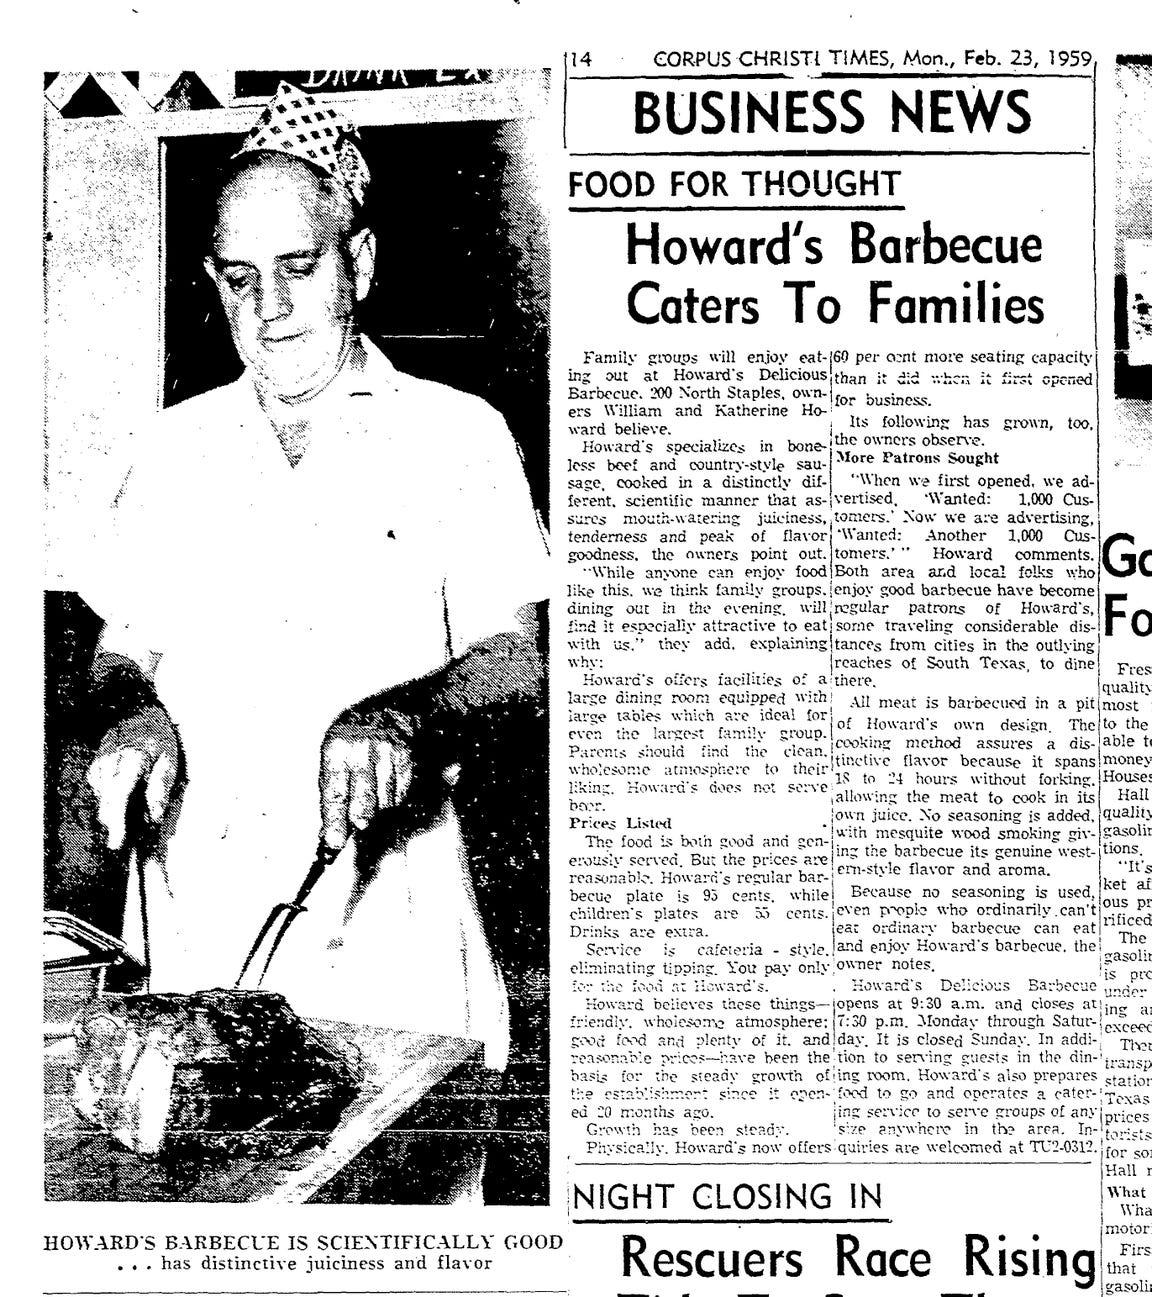 Article on Howard's Barbecue from Feb. 23, 1959 Caller-Times.